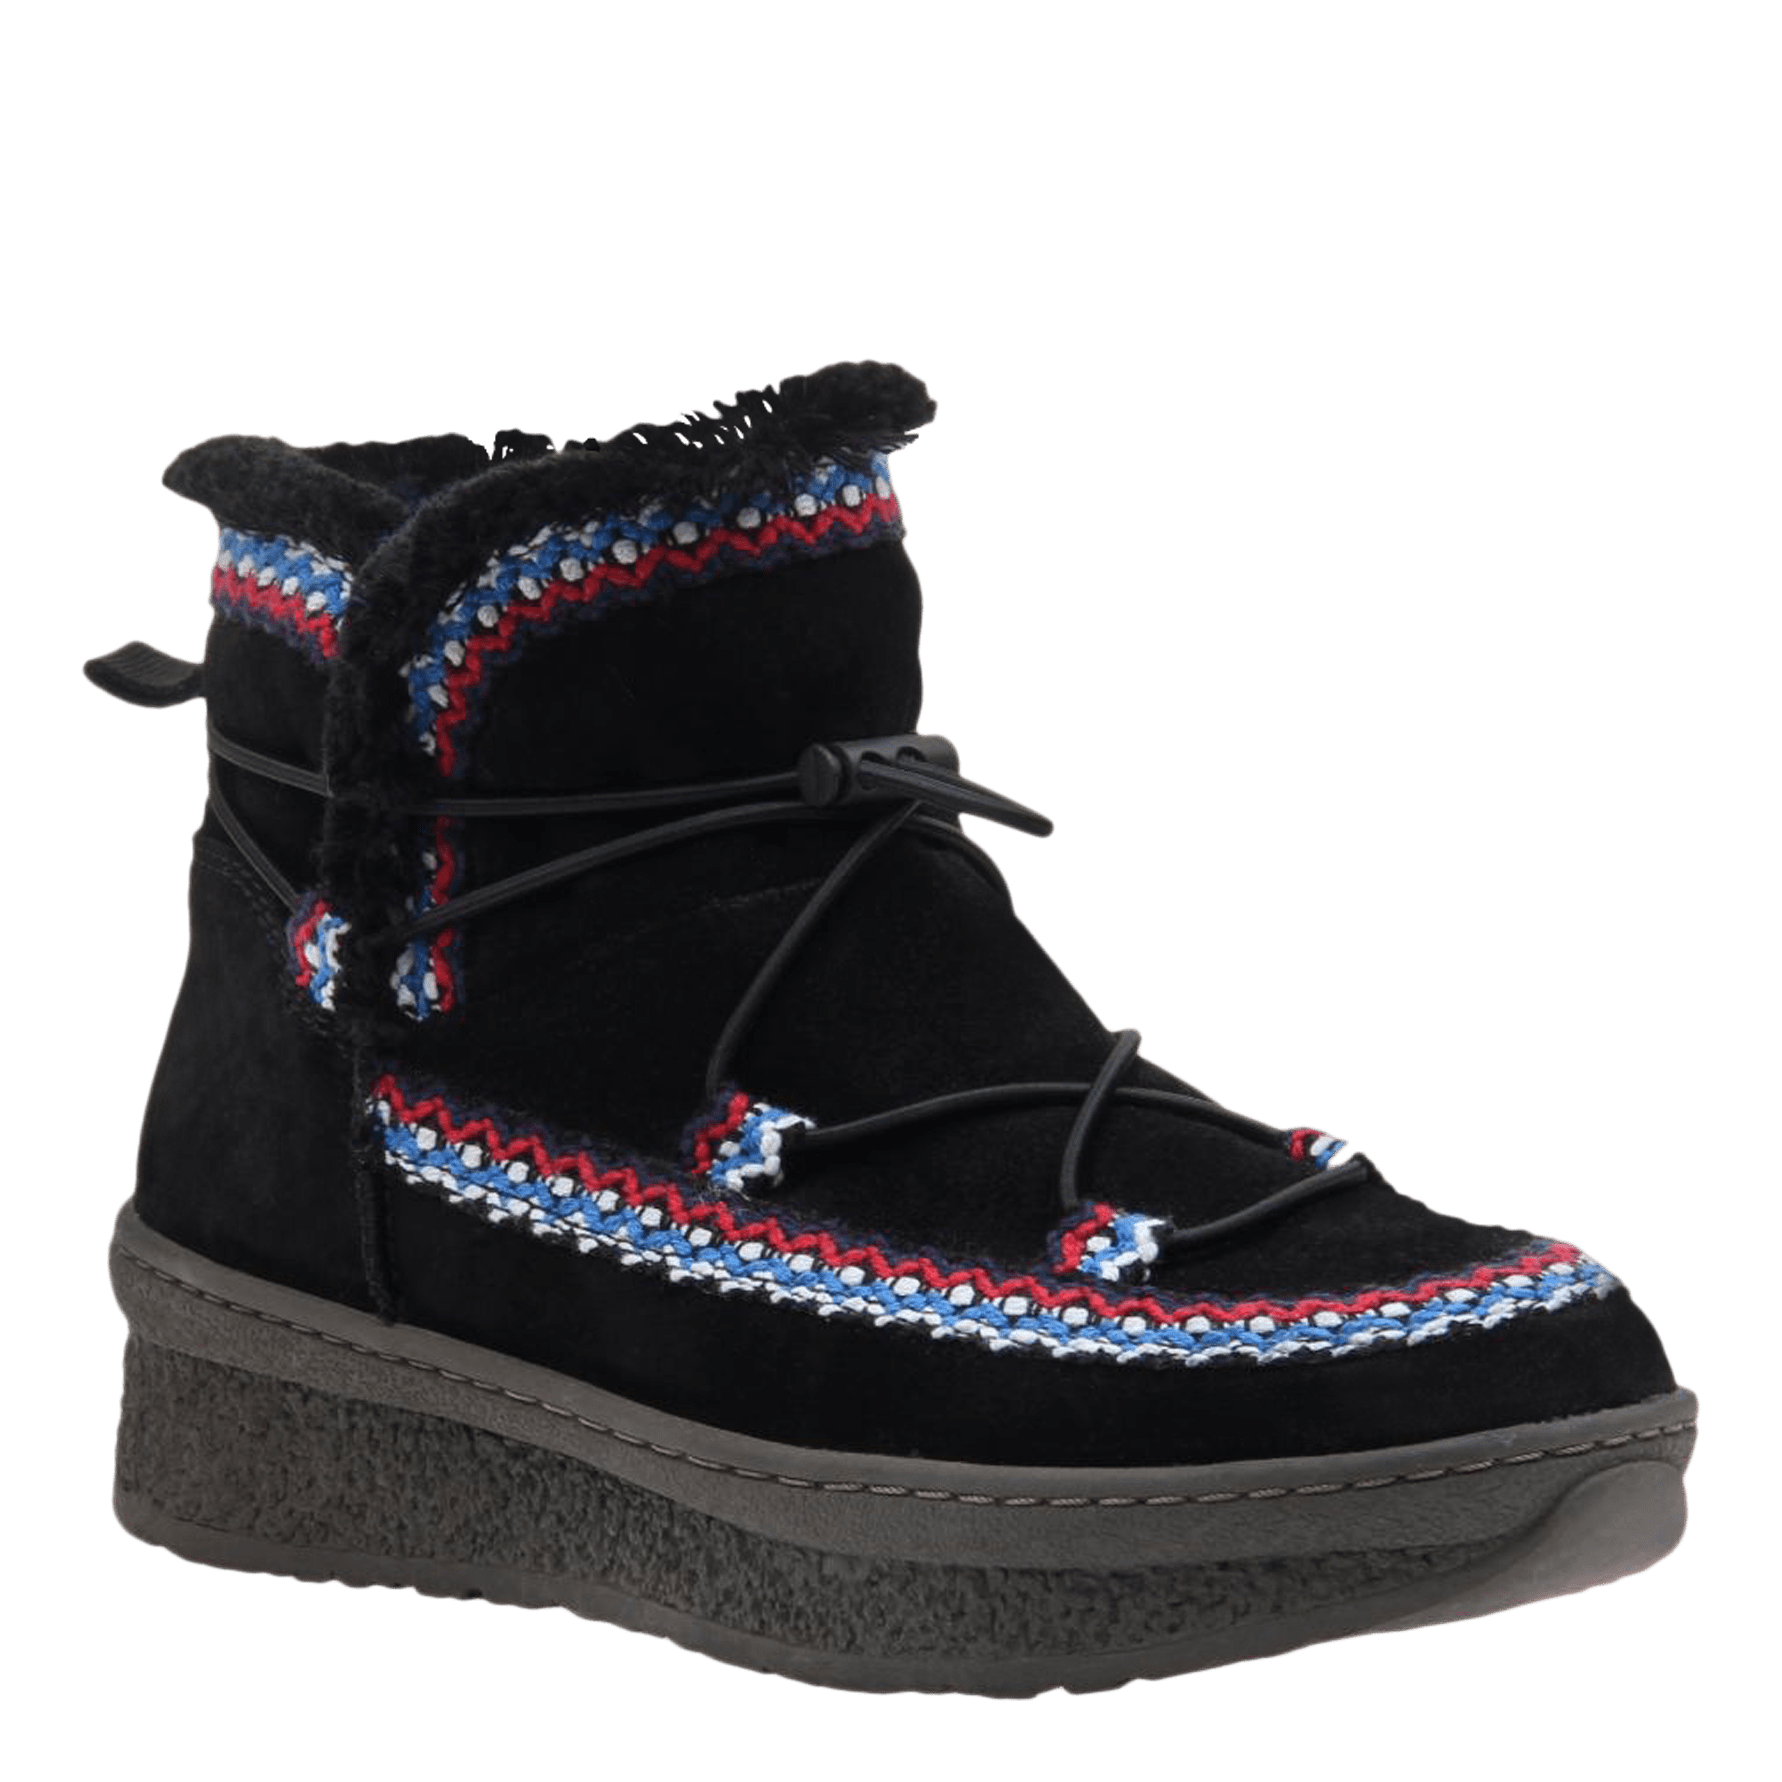 Womens cold weather boot Terreno in black